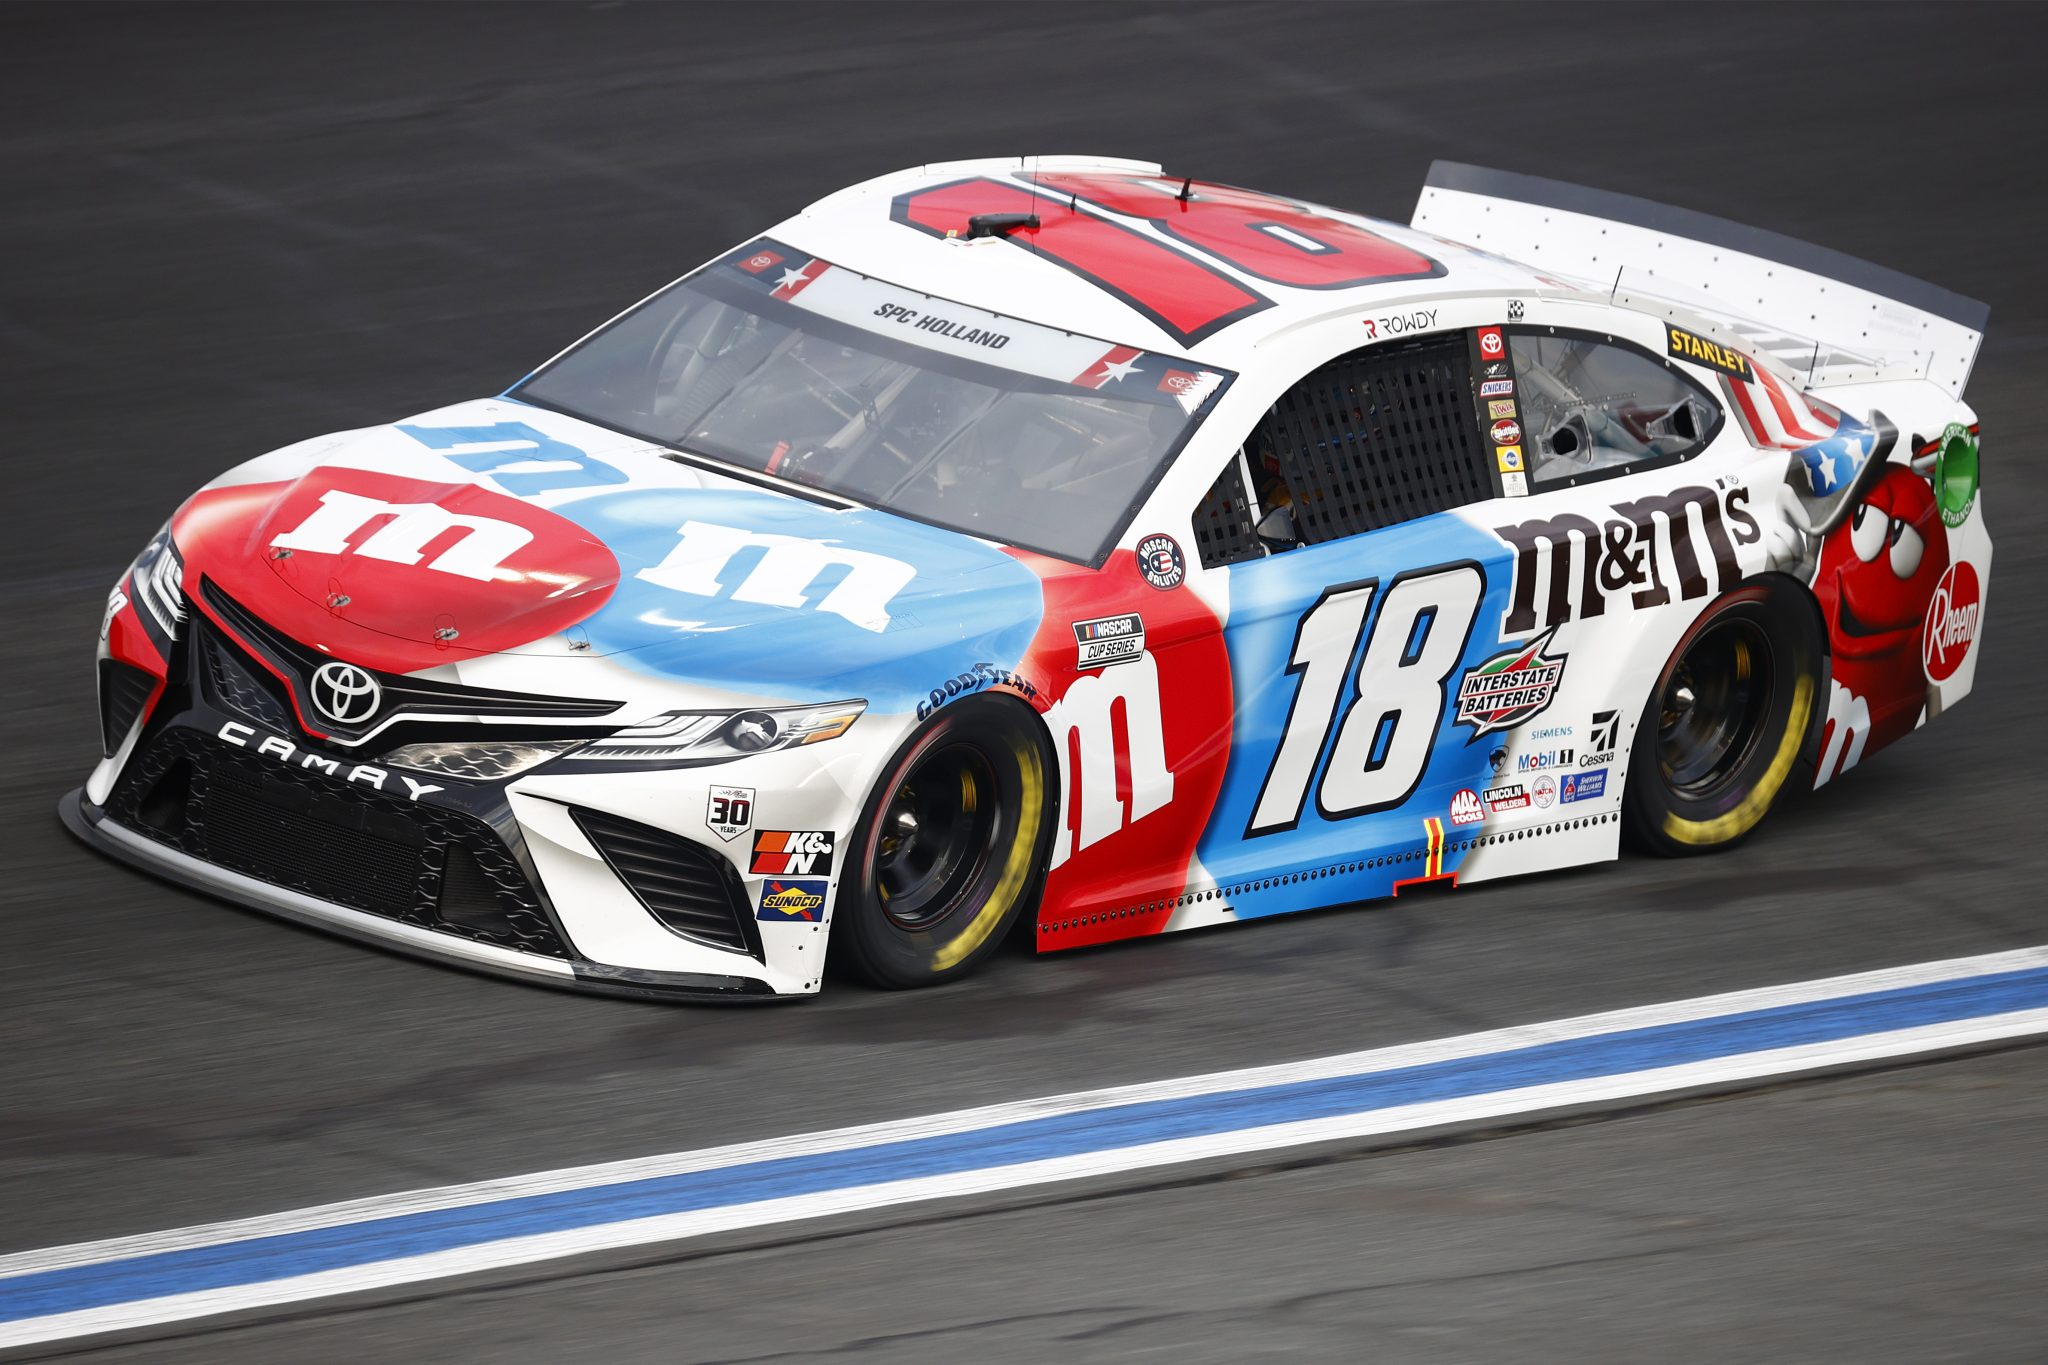 CONCORD, NORTH CAROLINA - MAY 28: Kyle Busch, driver of the #18 M&M's Red White & Blue Toyota, drives during practice for the NASCAR Cup Series Coca-Cola 600 at Charlotte Motor Speedway on May 28, 2021 in Concord, North Carolina. (Photo by Jared C. Tilton/Getty Images) | Getty Images